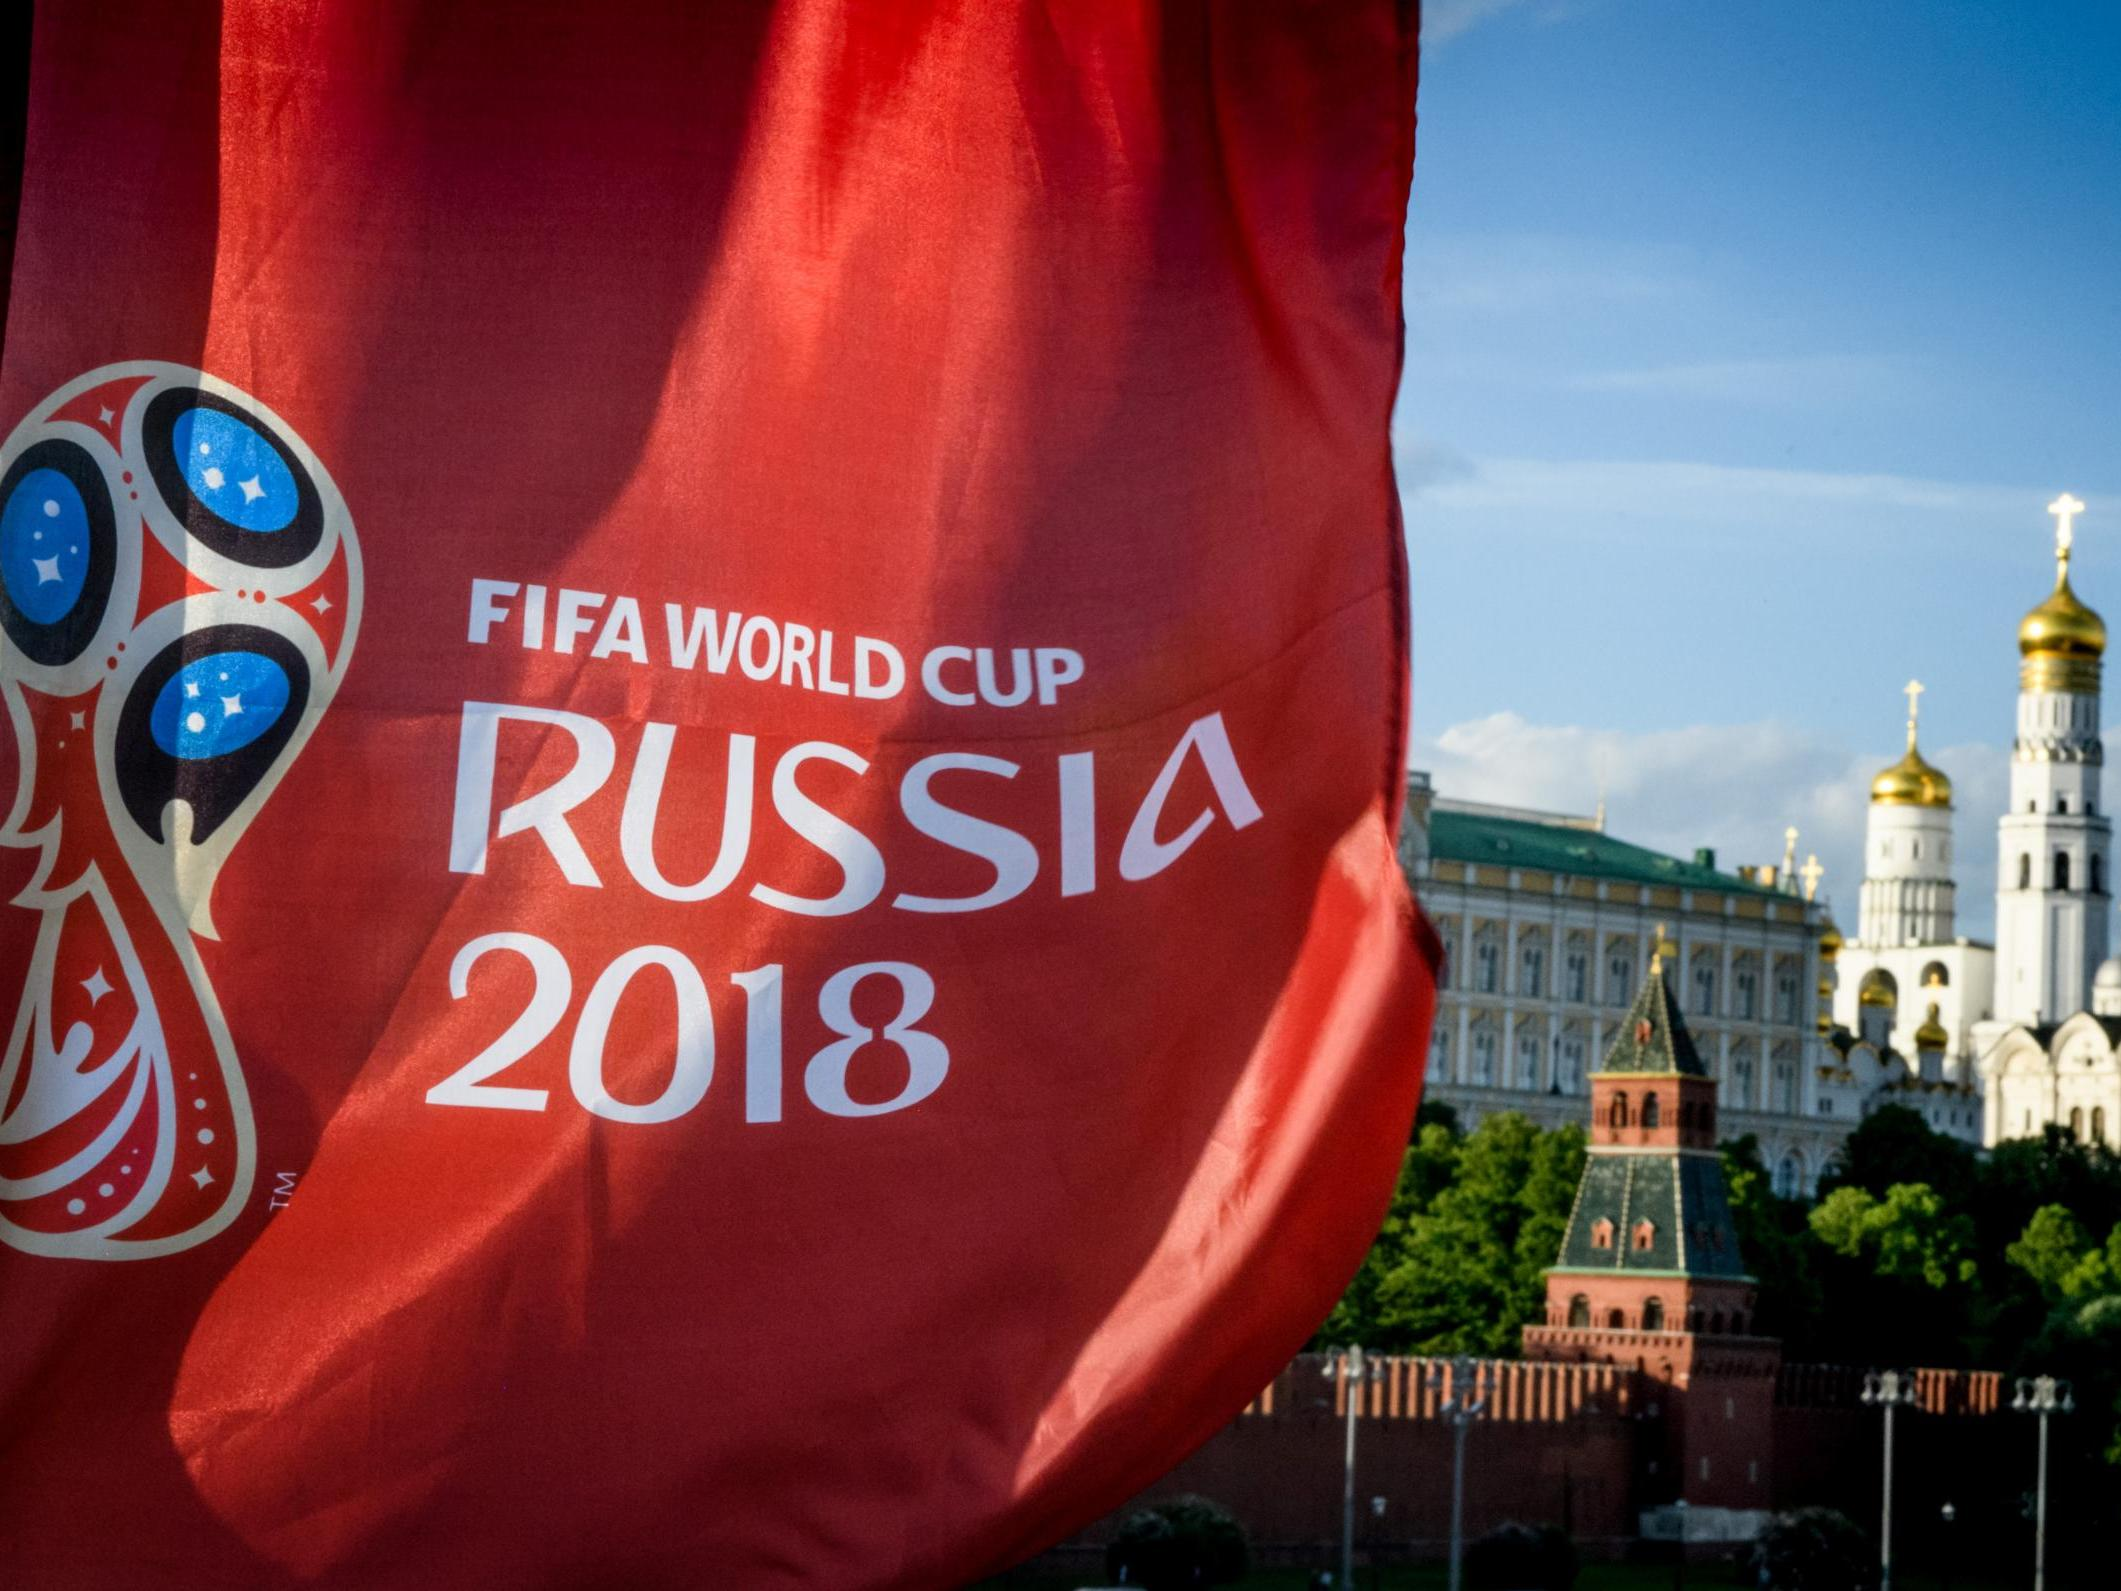 More than 3 5 billion people watched 2018 World Cup, says Fifa | The